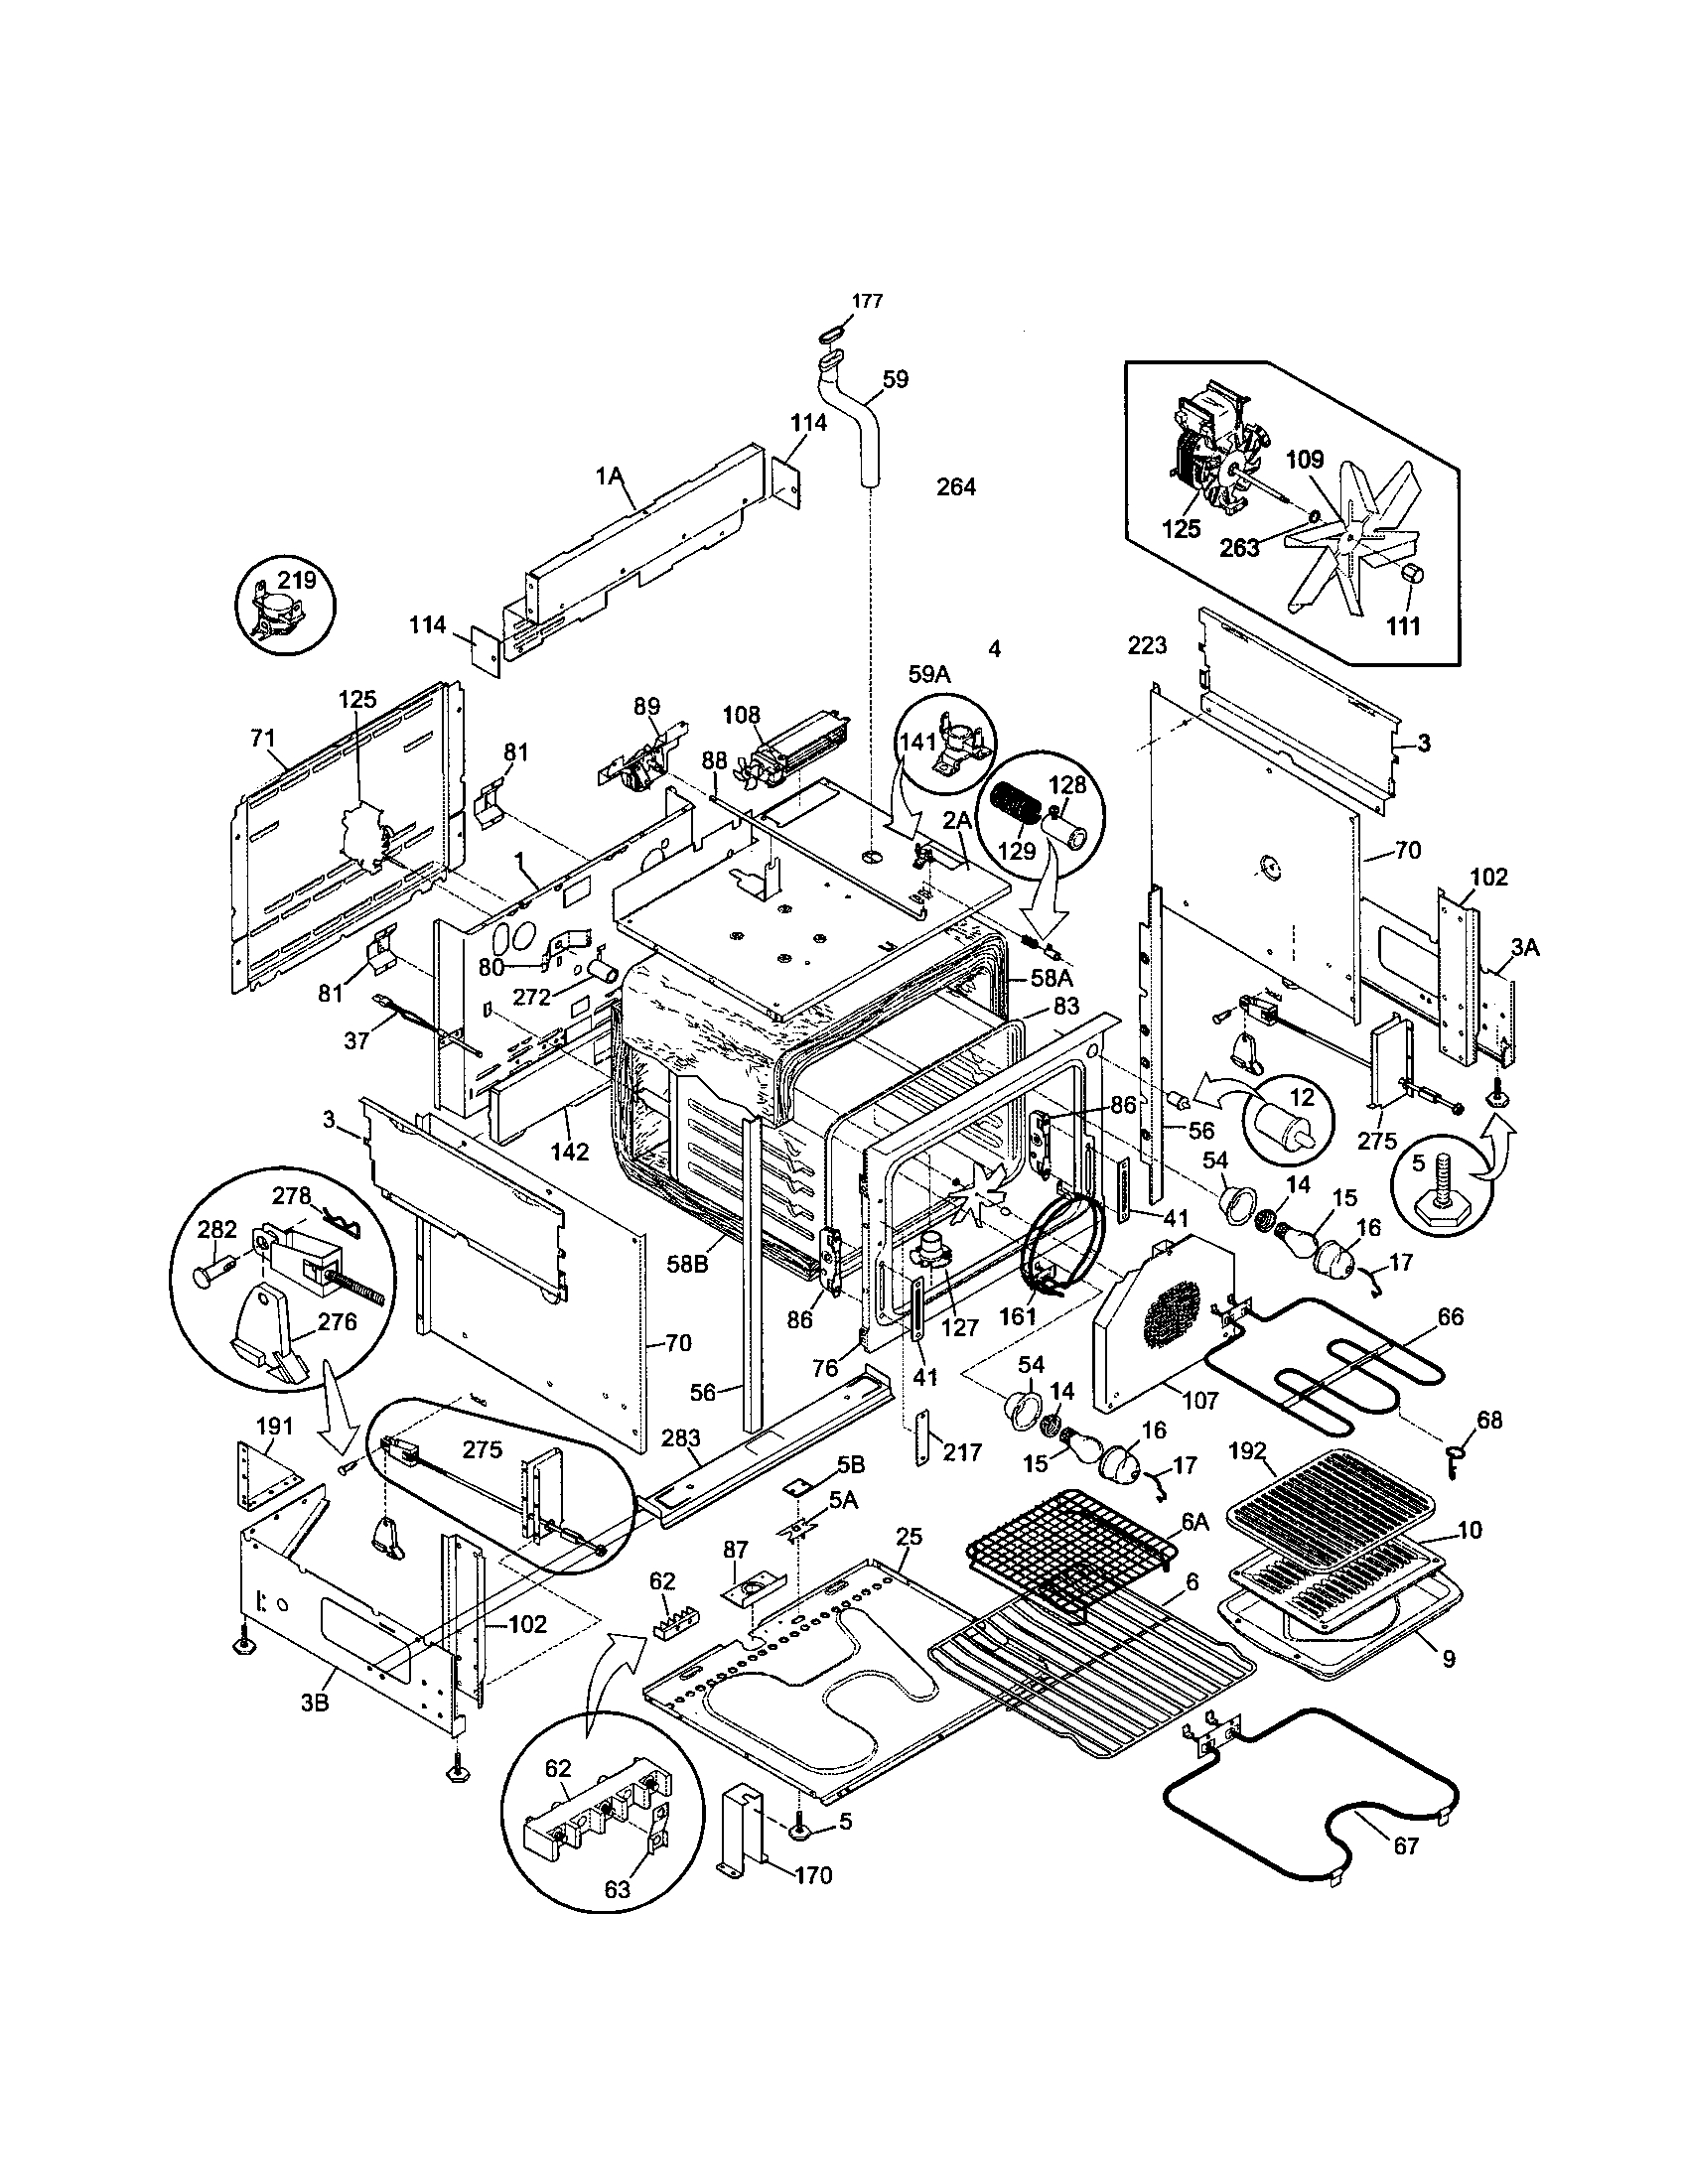 wiring diagram kenmore dishwasher compressor wiring diagram kenmore refrigerator kenmore ultra wash dishwasher parts diagram | automotive ...